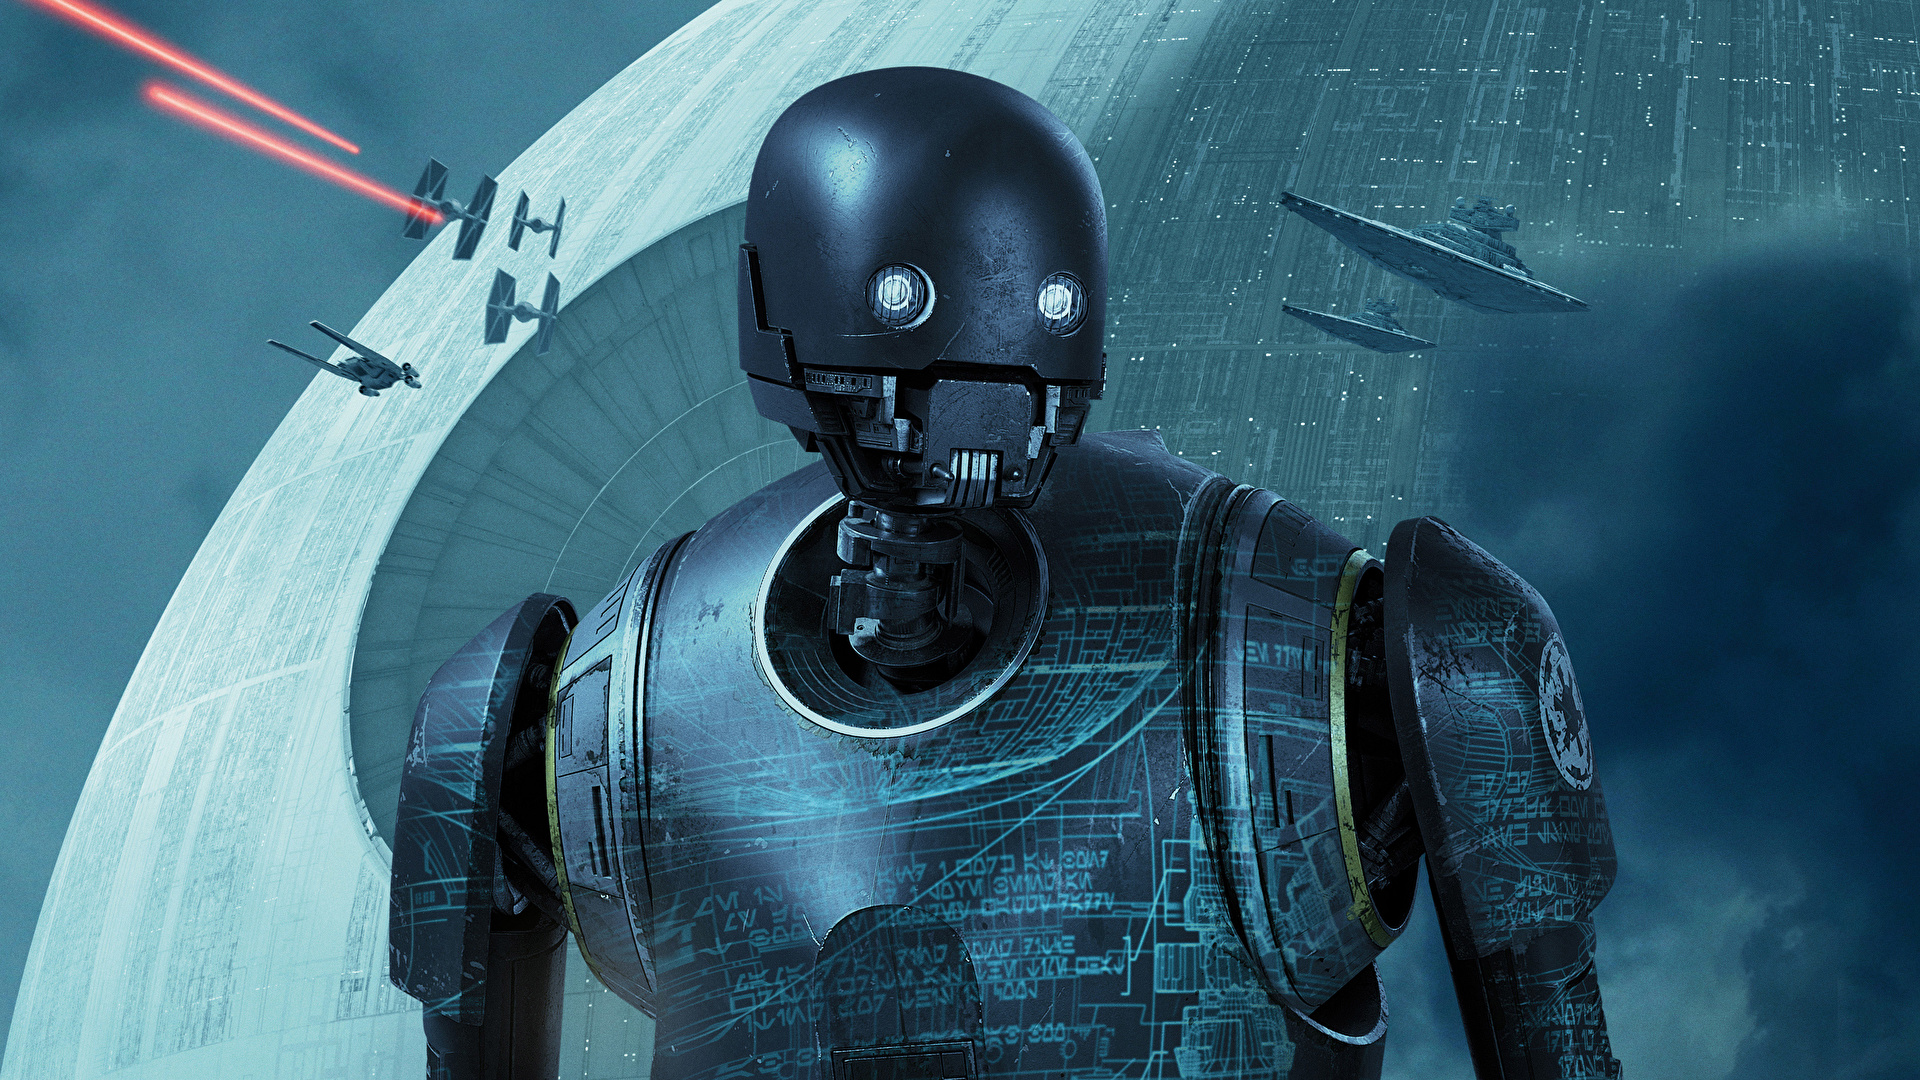 Wallpaper Rogue One A Star Wars Story Robot K 2so Movies 1920x1080